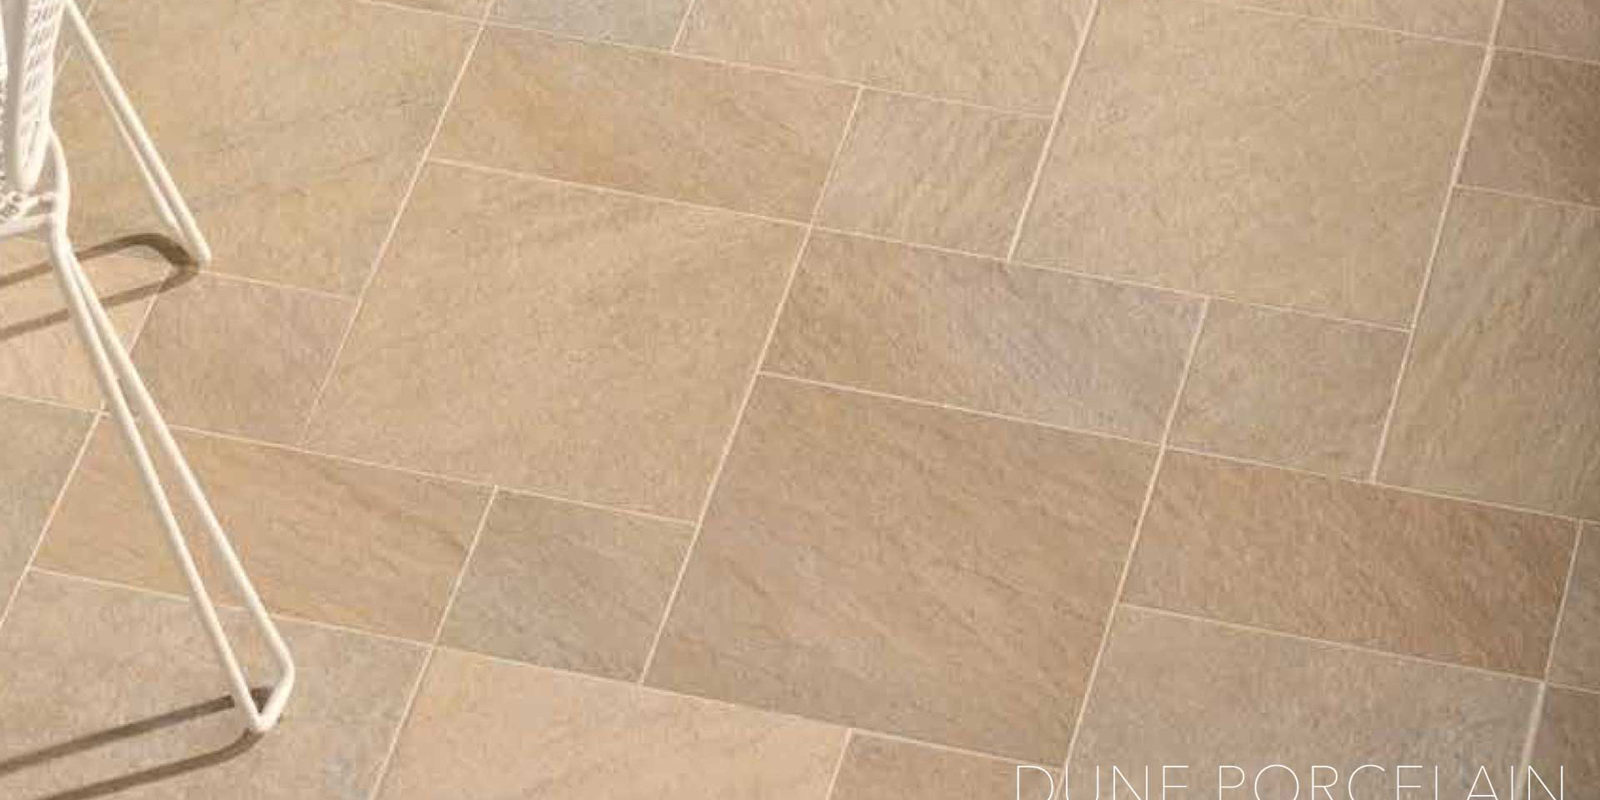 Laying your Natural Stone | DT Stone Blog